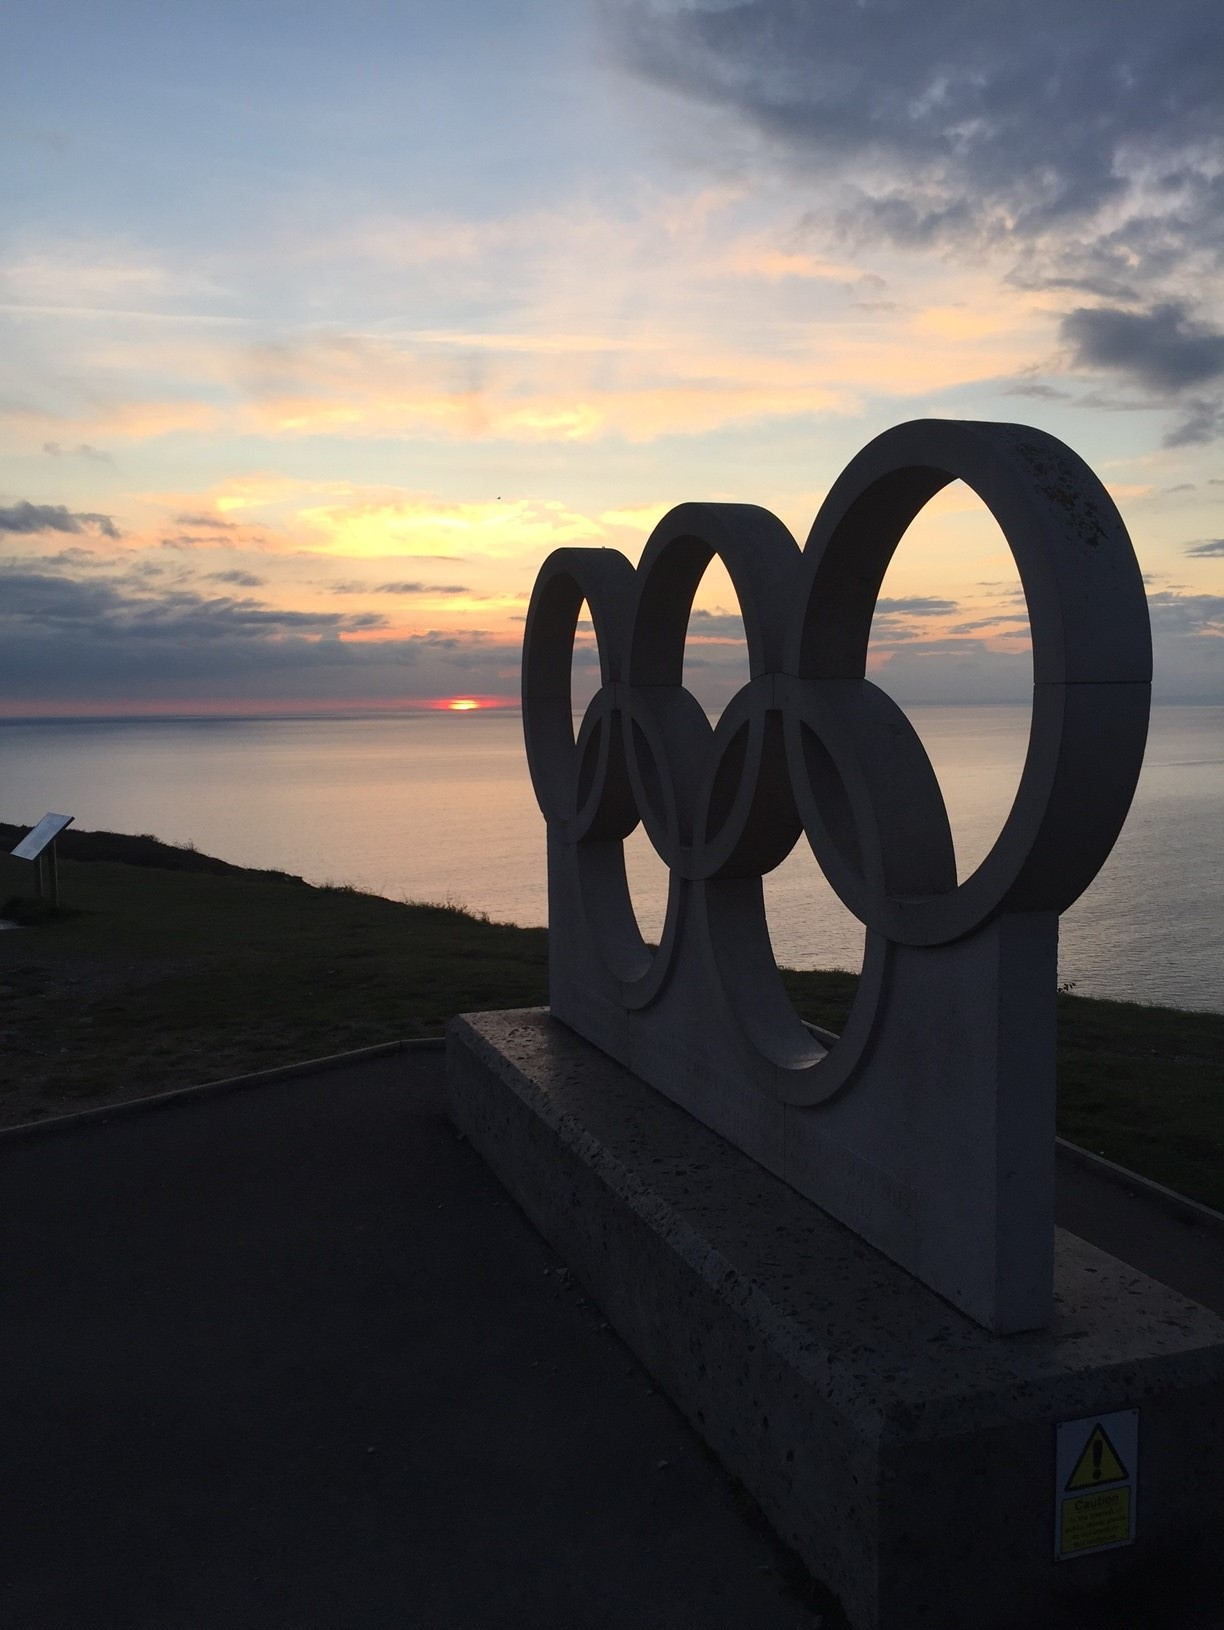 Marked my first night living in Weymouth with a trip up to the top of Portland to see the Olympic Rings next to the lovely sunset. Just ooking at this picture makes me hungry for success.